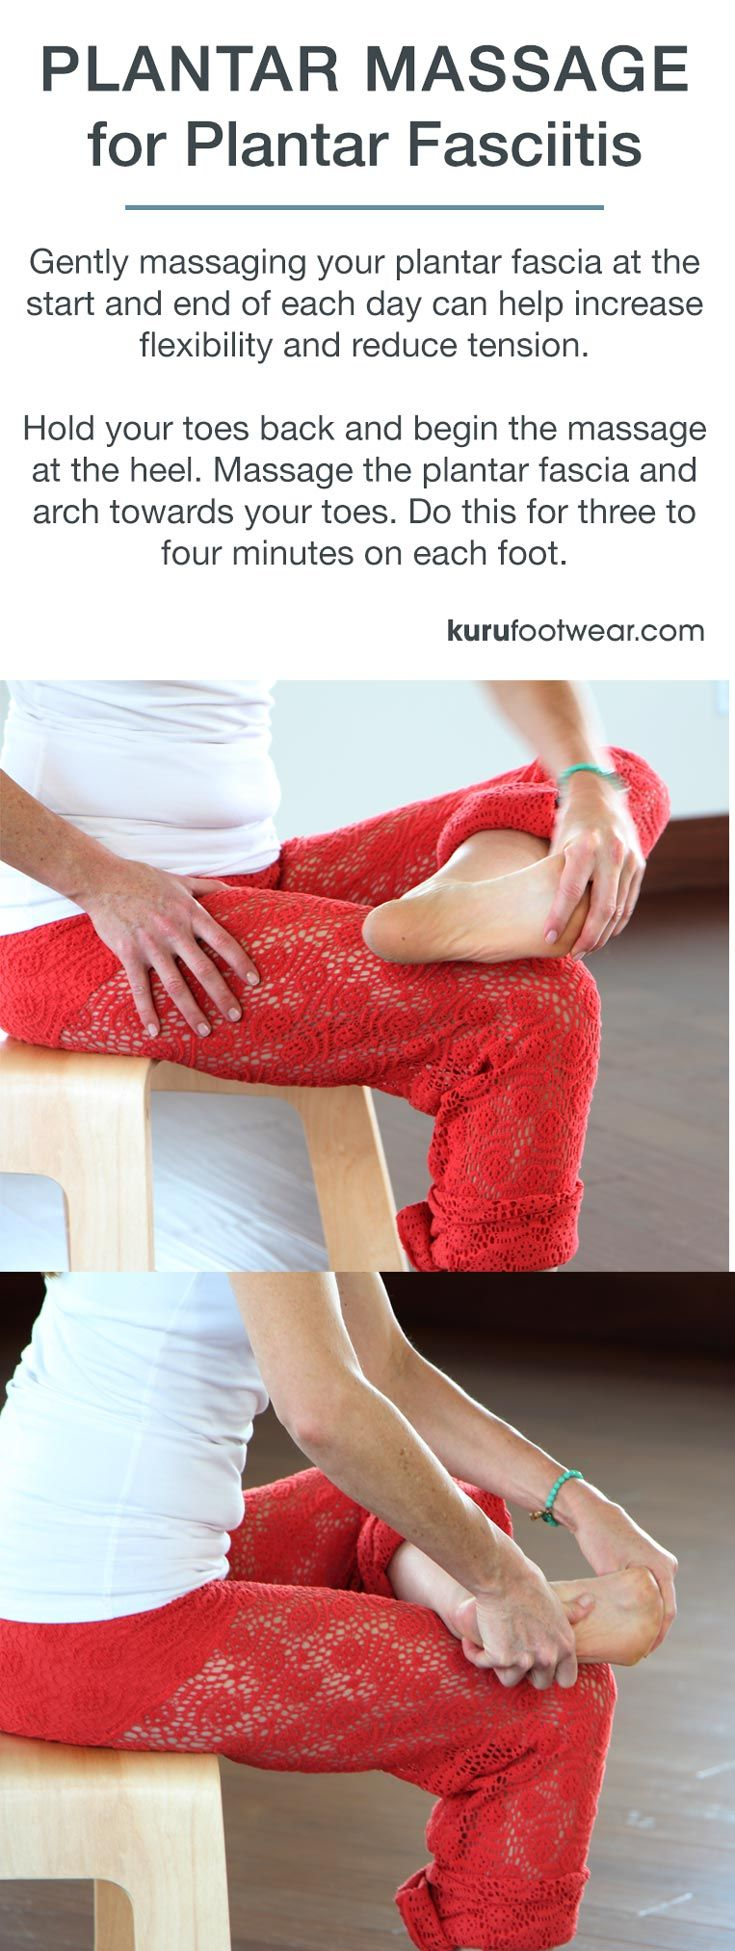 PLANTAR MASSAGE FOR PLANTAR FASCIITIS ||  Gently massaging your plantar fascia…